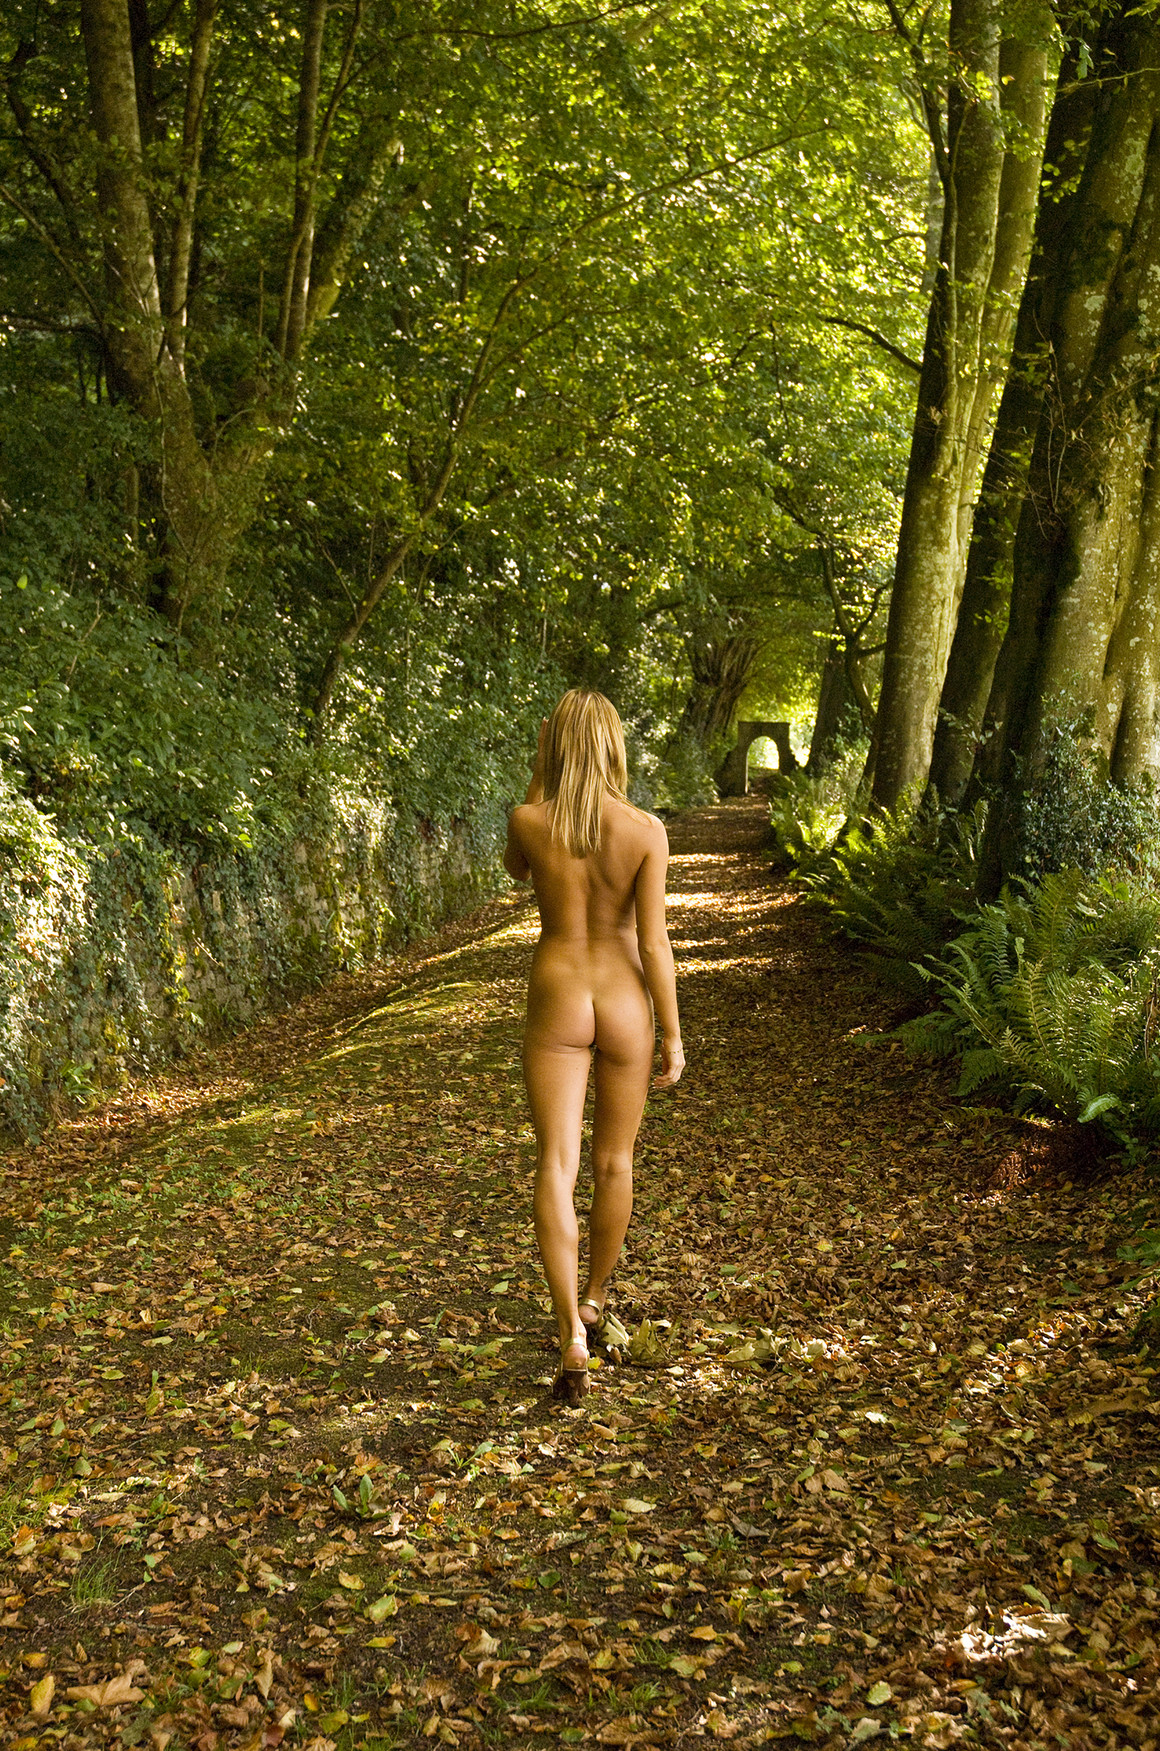 Pictures Naked Women In Woods